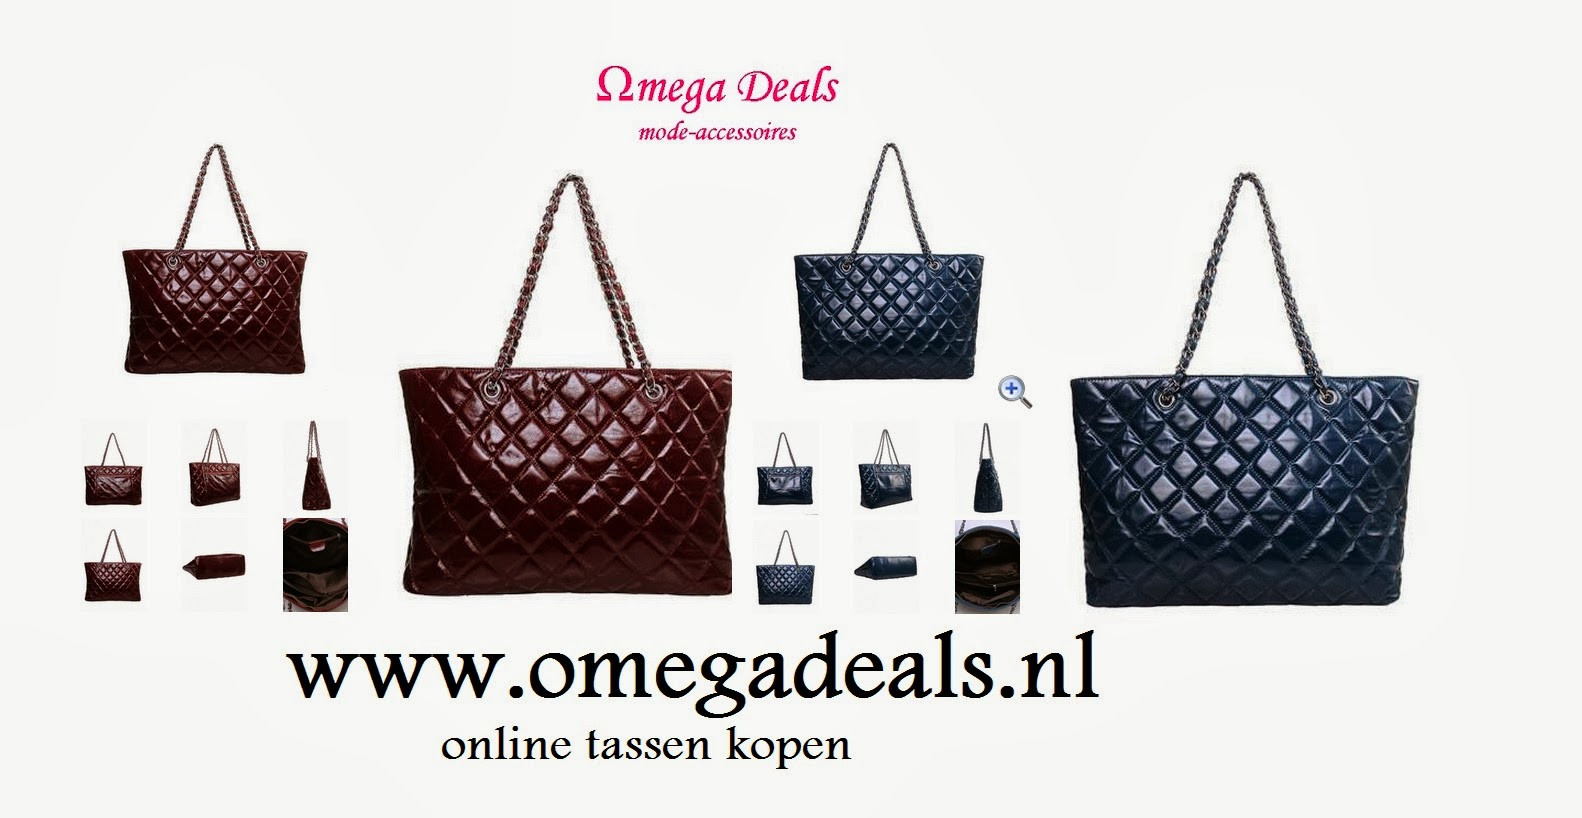 Chanel De Coolste Fashion Merk 2013 Omega Deals Blog